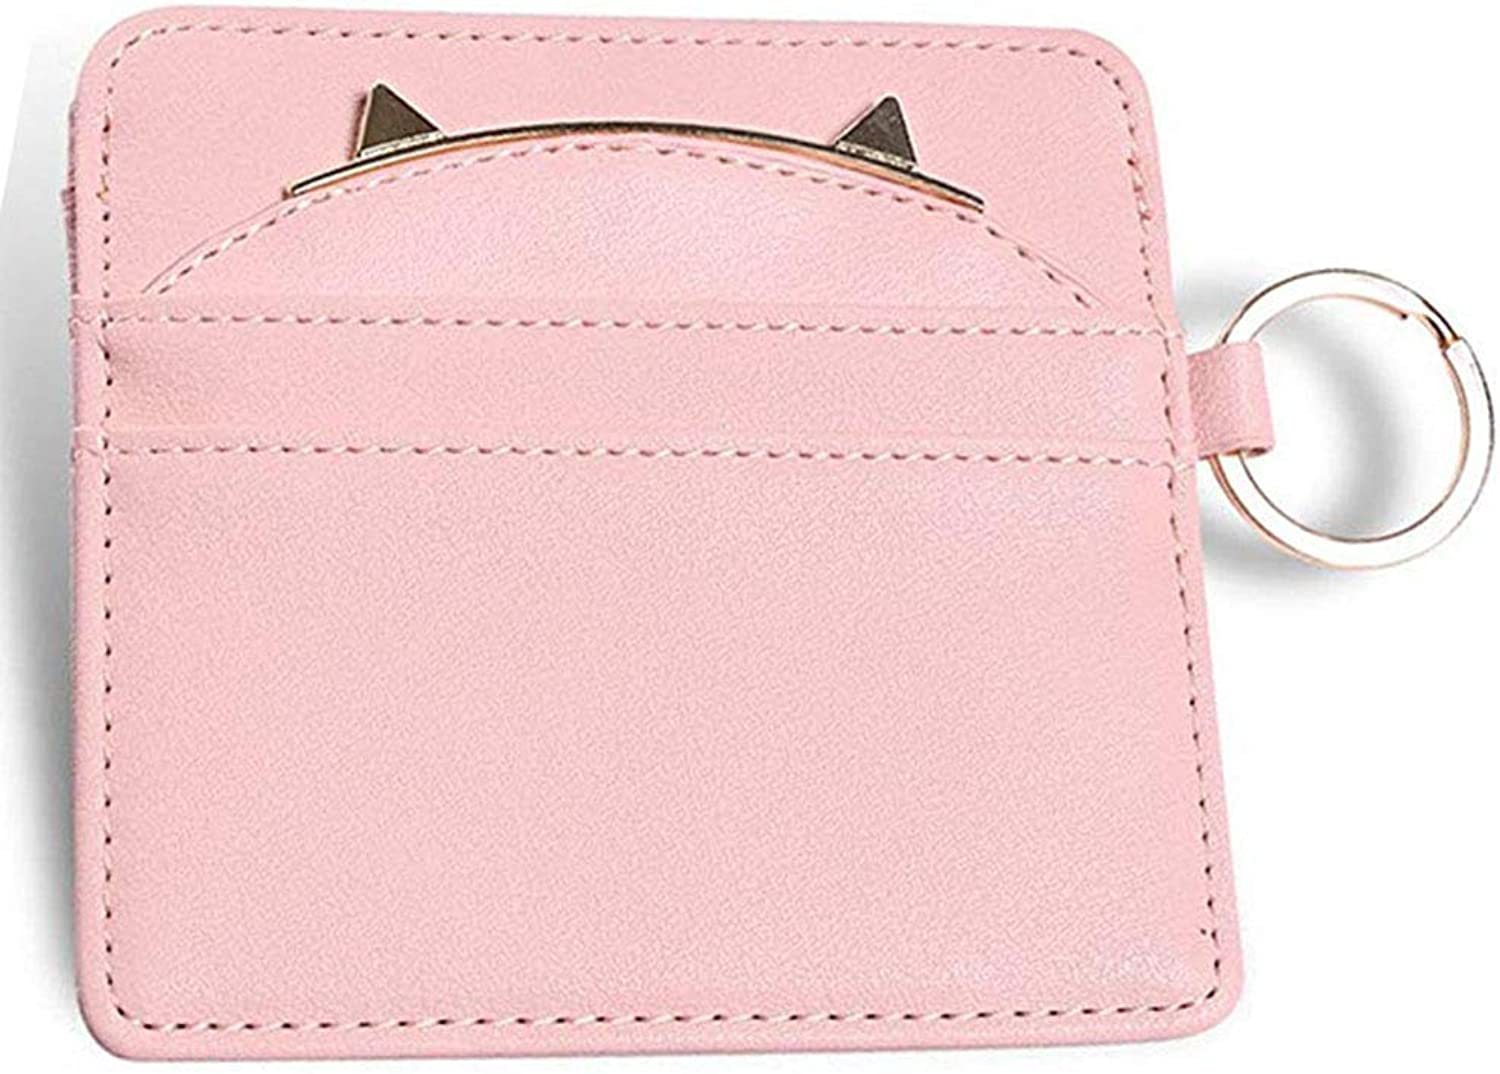 Small Credit Card Holder for Women with Keychain Pink Cat Ear Leather Coin Purses Card Holders Girls Key Chain Wallet